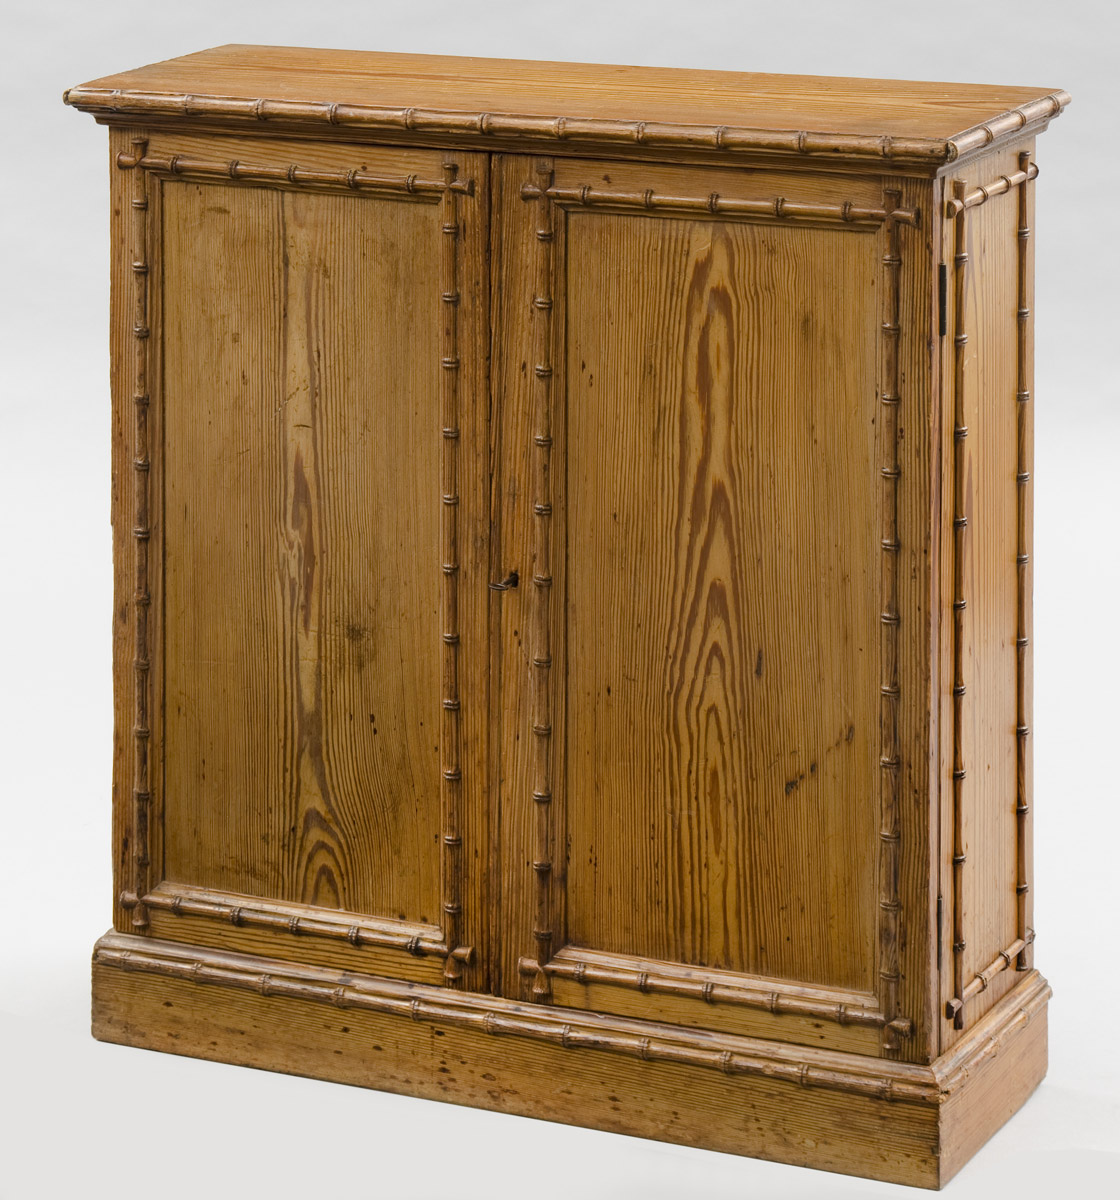 Antique English Faux Bamboo Cabinet | Antique English Cabinets